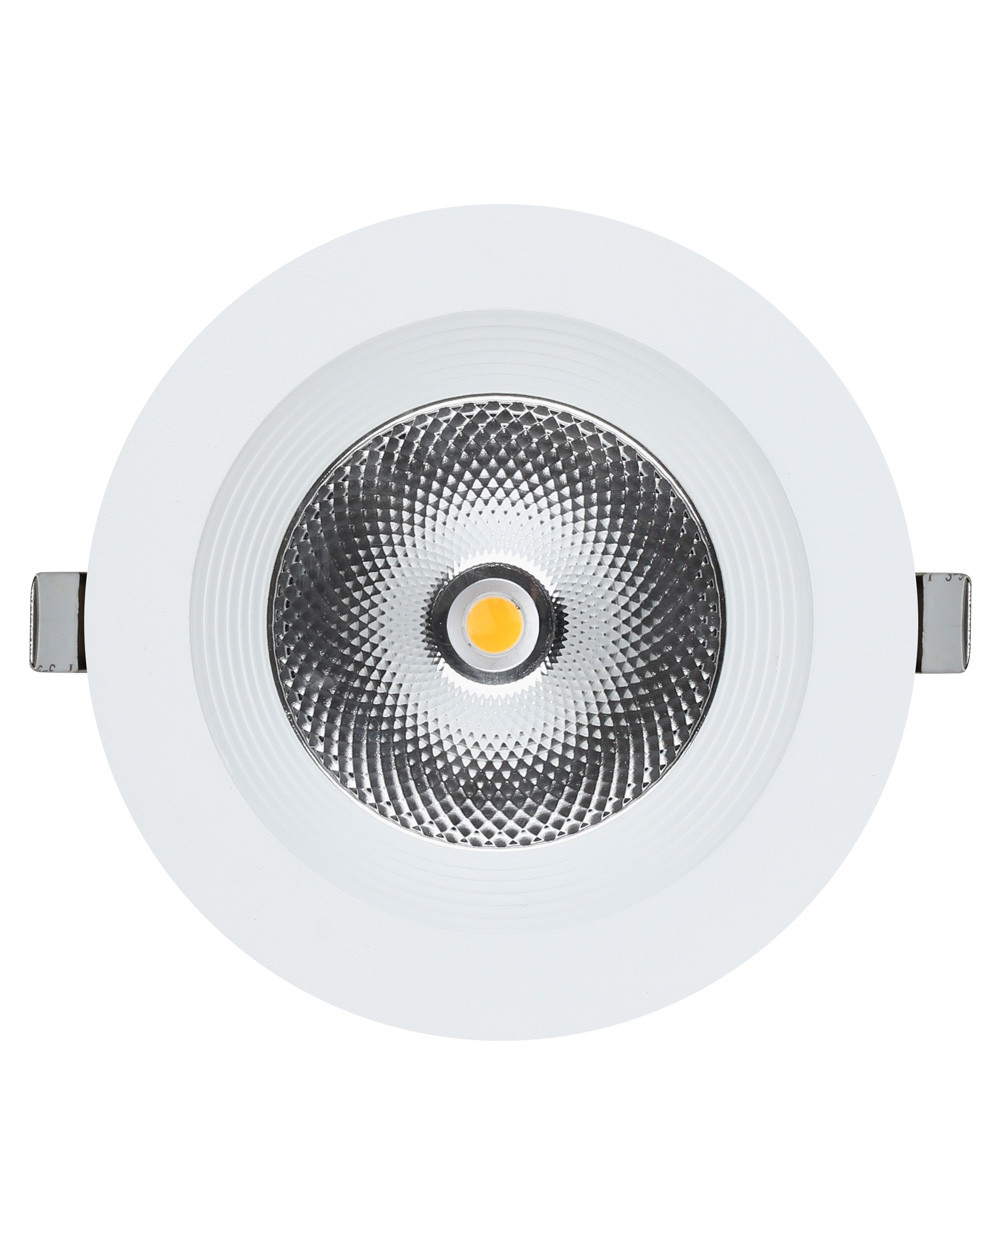 KAILANI 6W 2 Inch COB Led Downlight - AL.281